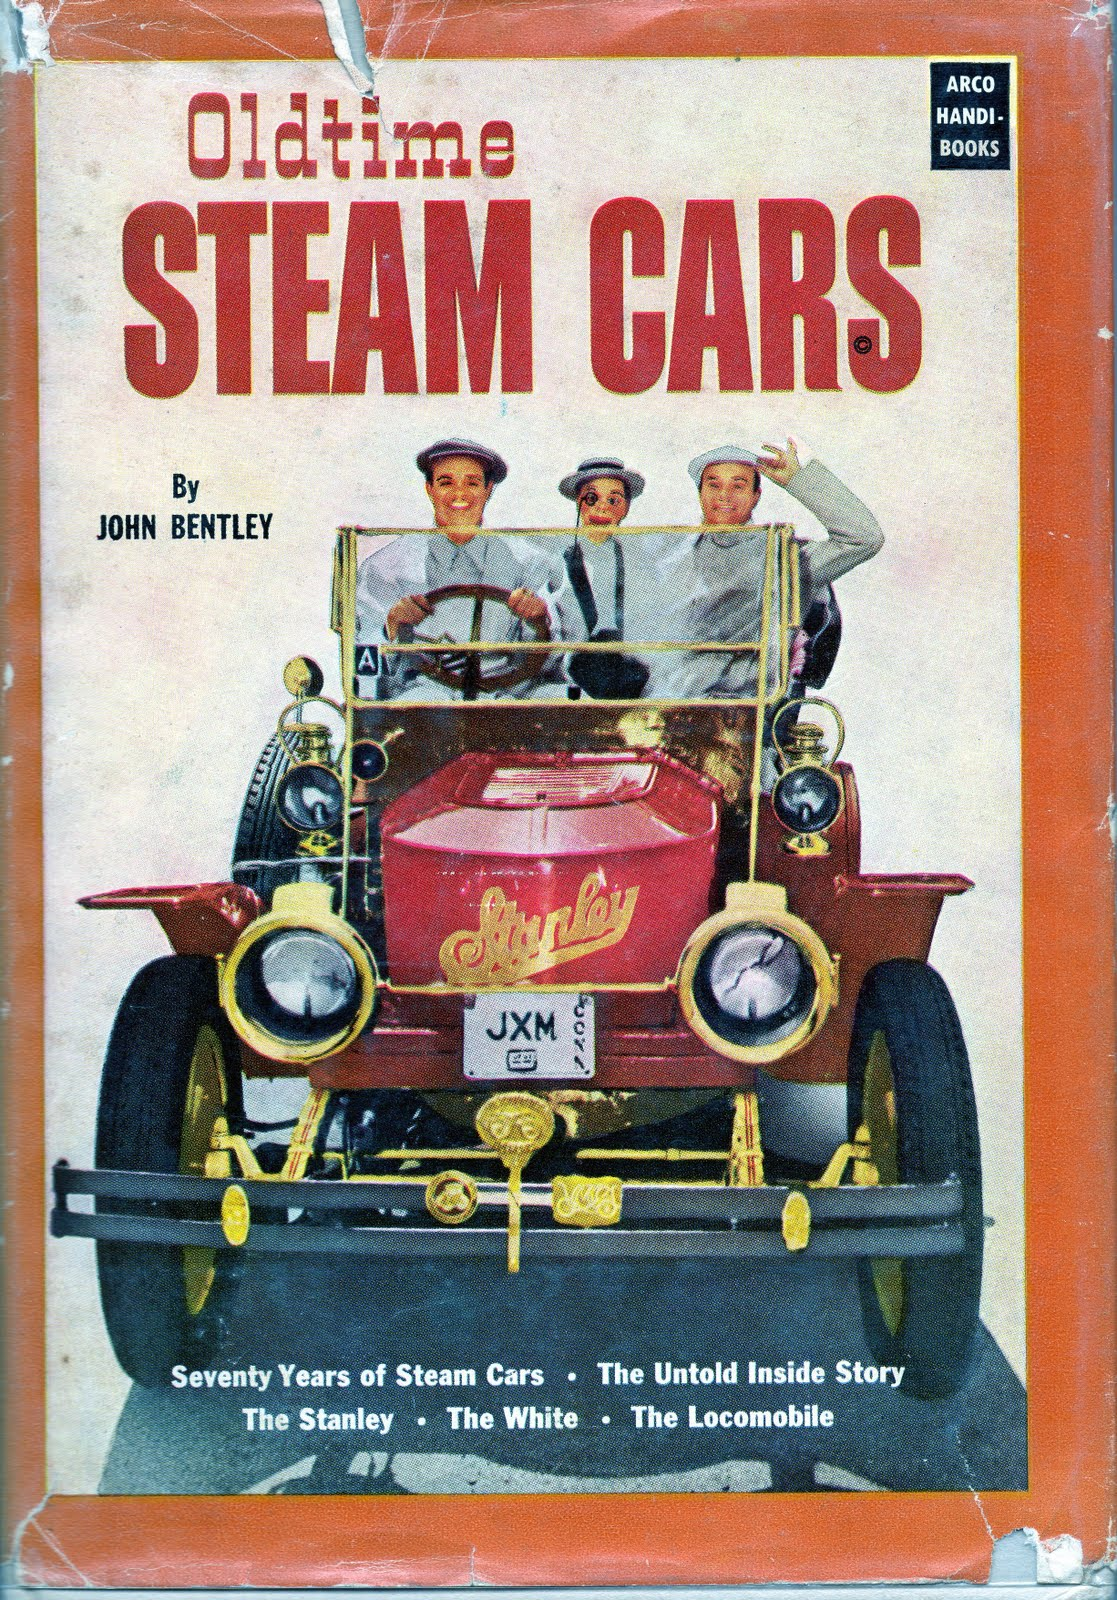 James Melton: Musical Career and Antique Cars: Steam Cars